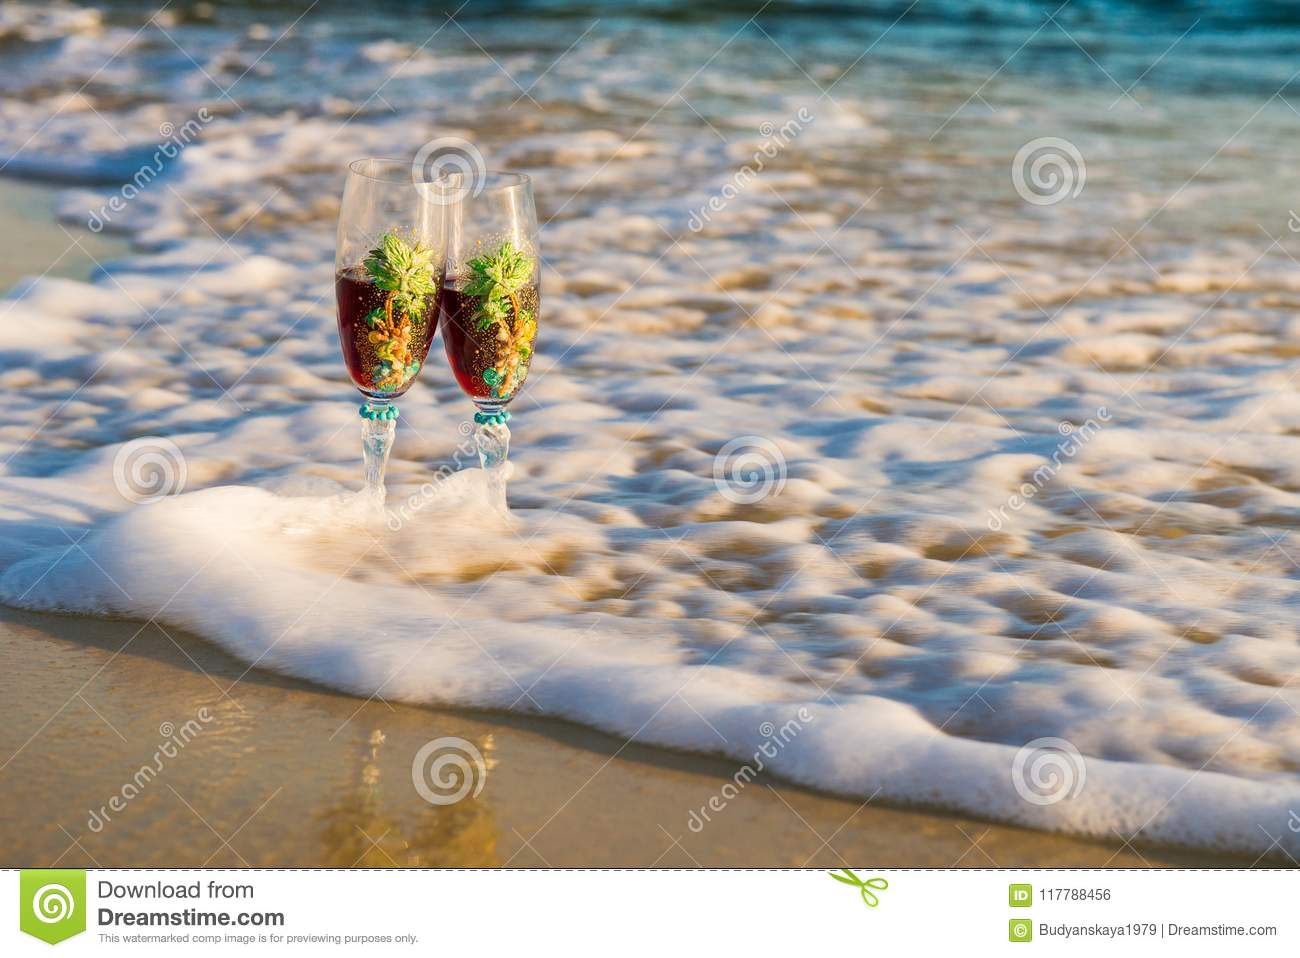 Glass of wine in the rays of the sunset. Glass on the sand